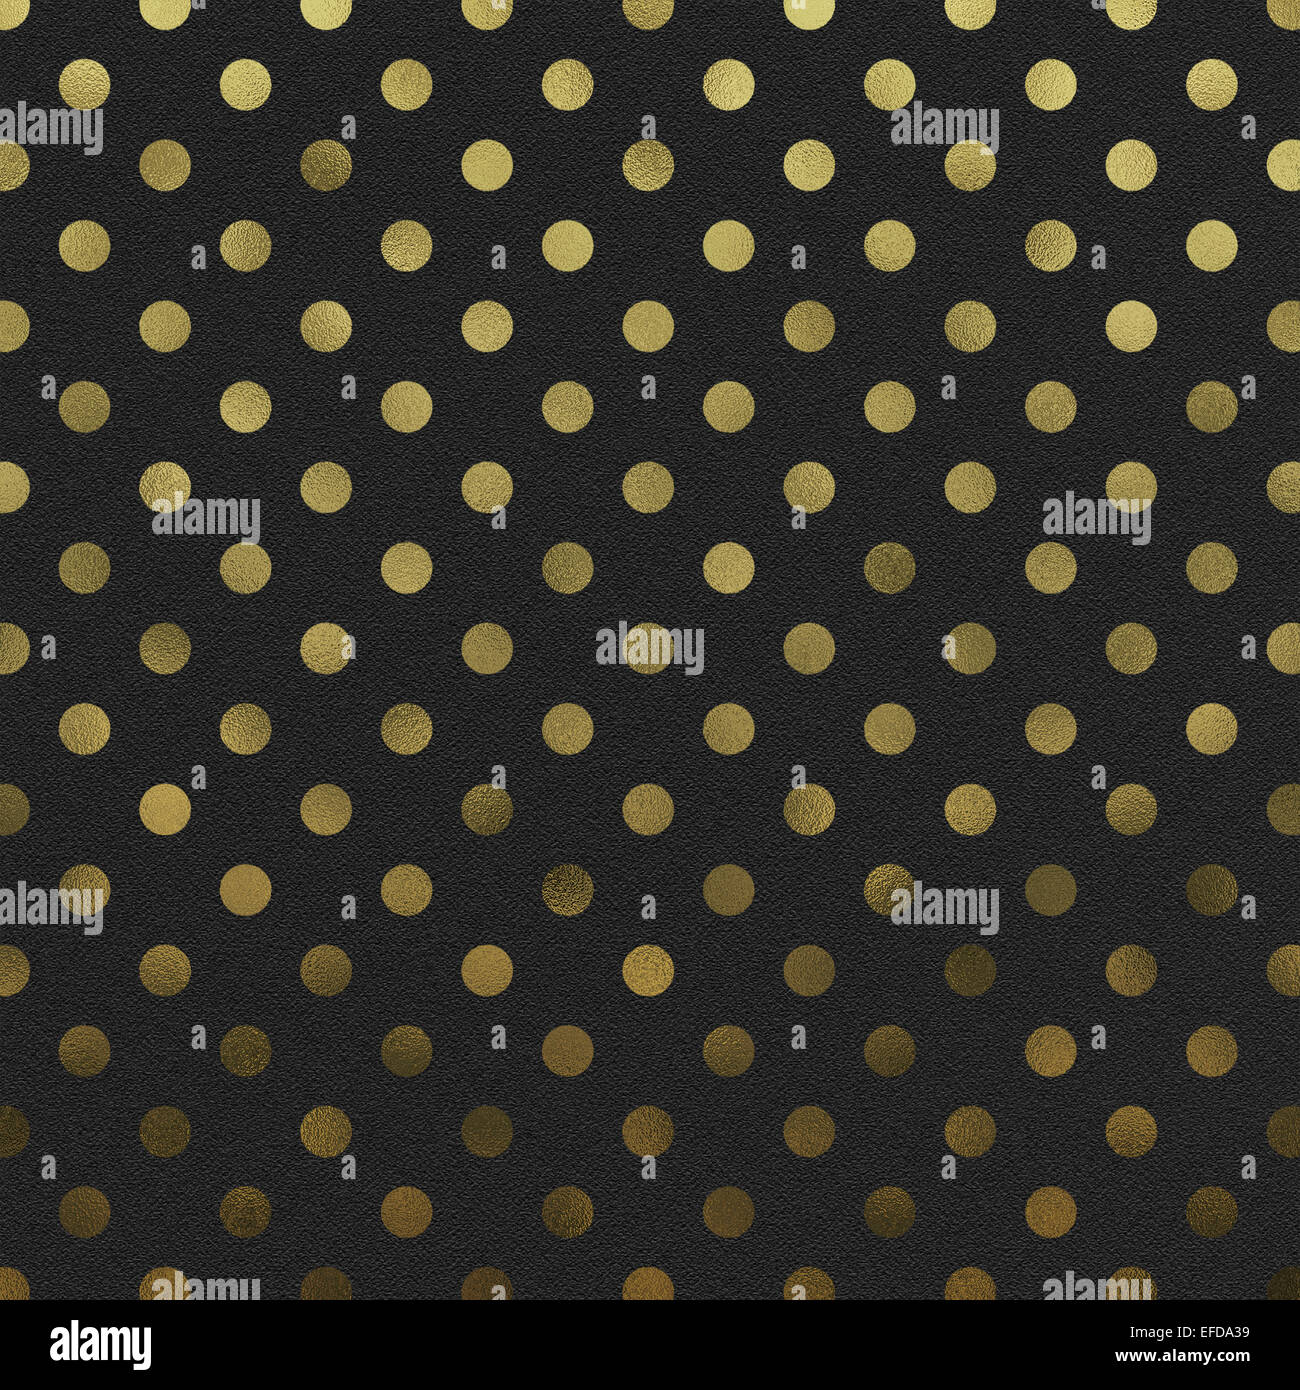 gold polka dots background images